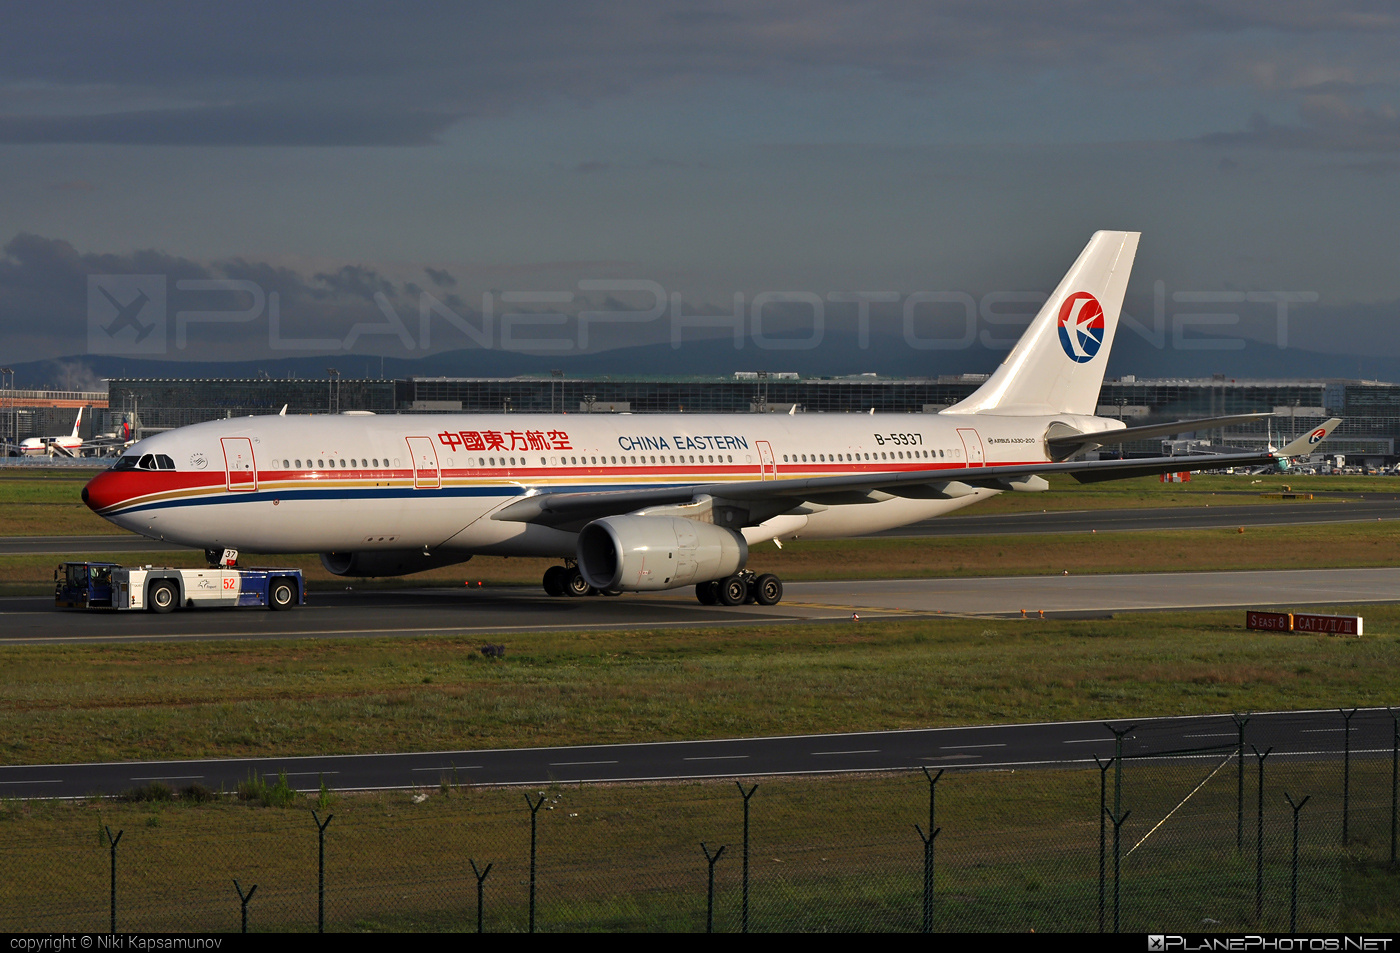 Airbus A330-243 - B-5937 operated by China Eastern Airlines #a330 #a330family #airbus #airbus330 #chinaeastern #chinaeasternairlines